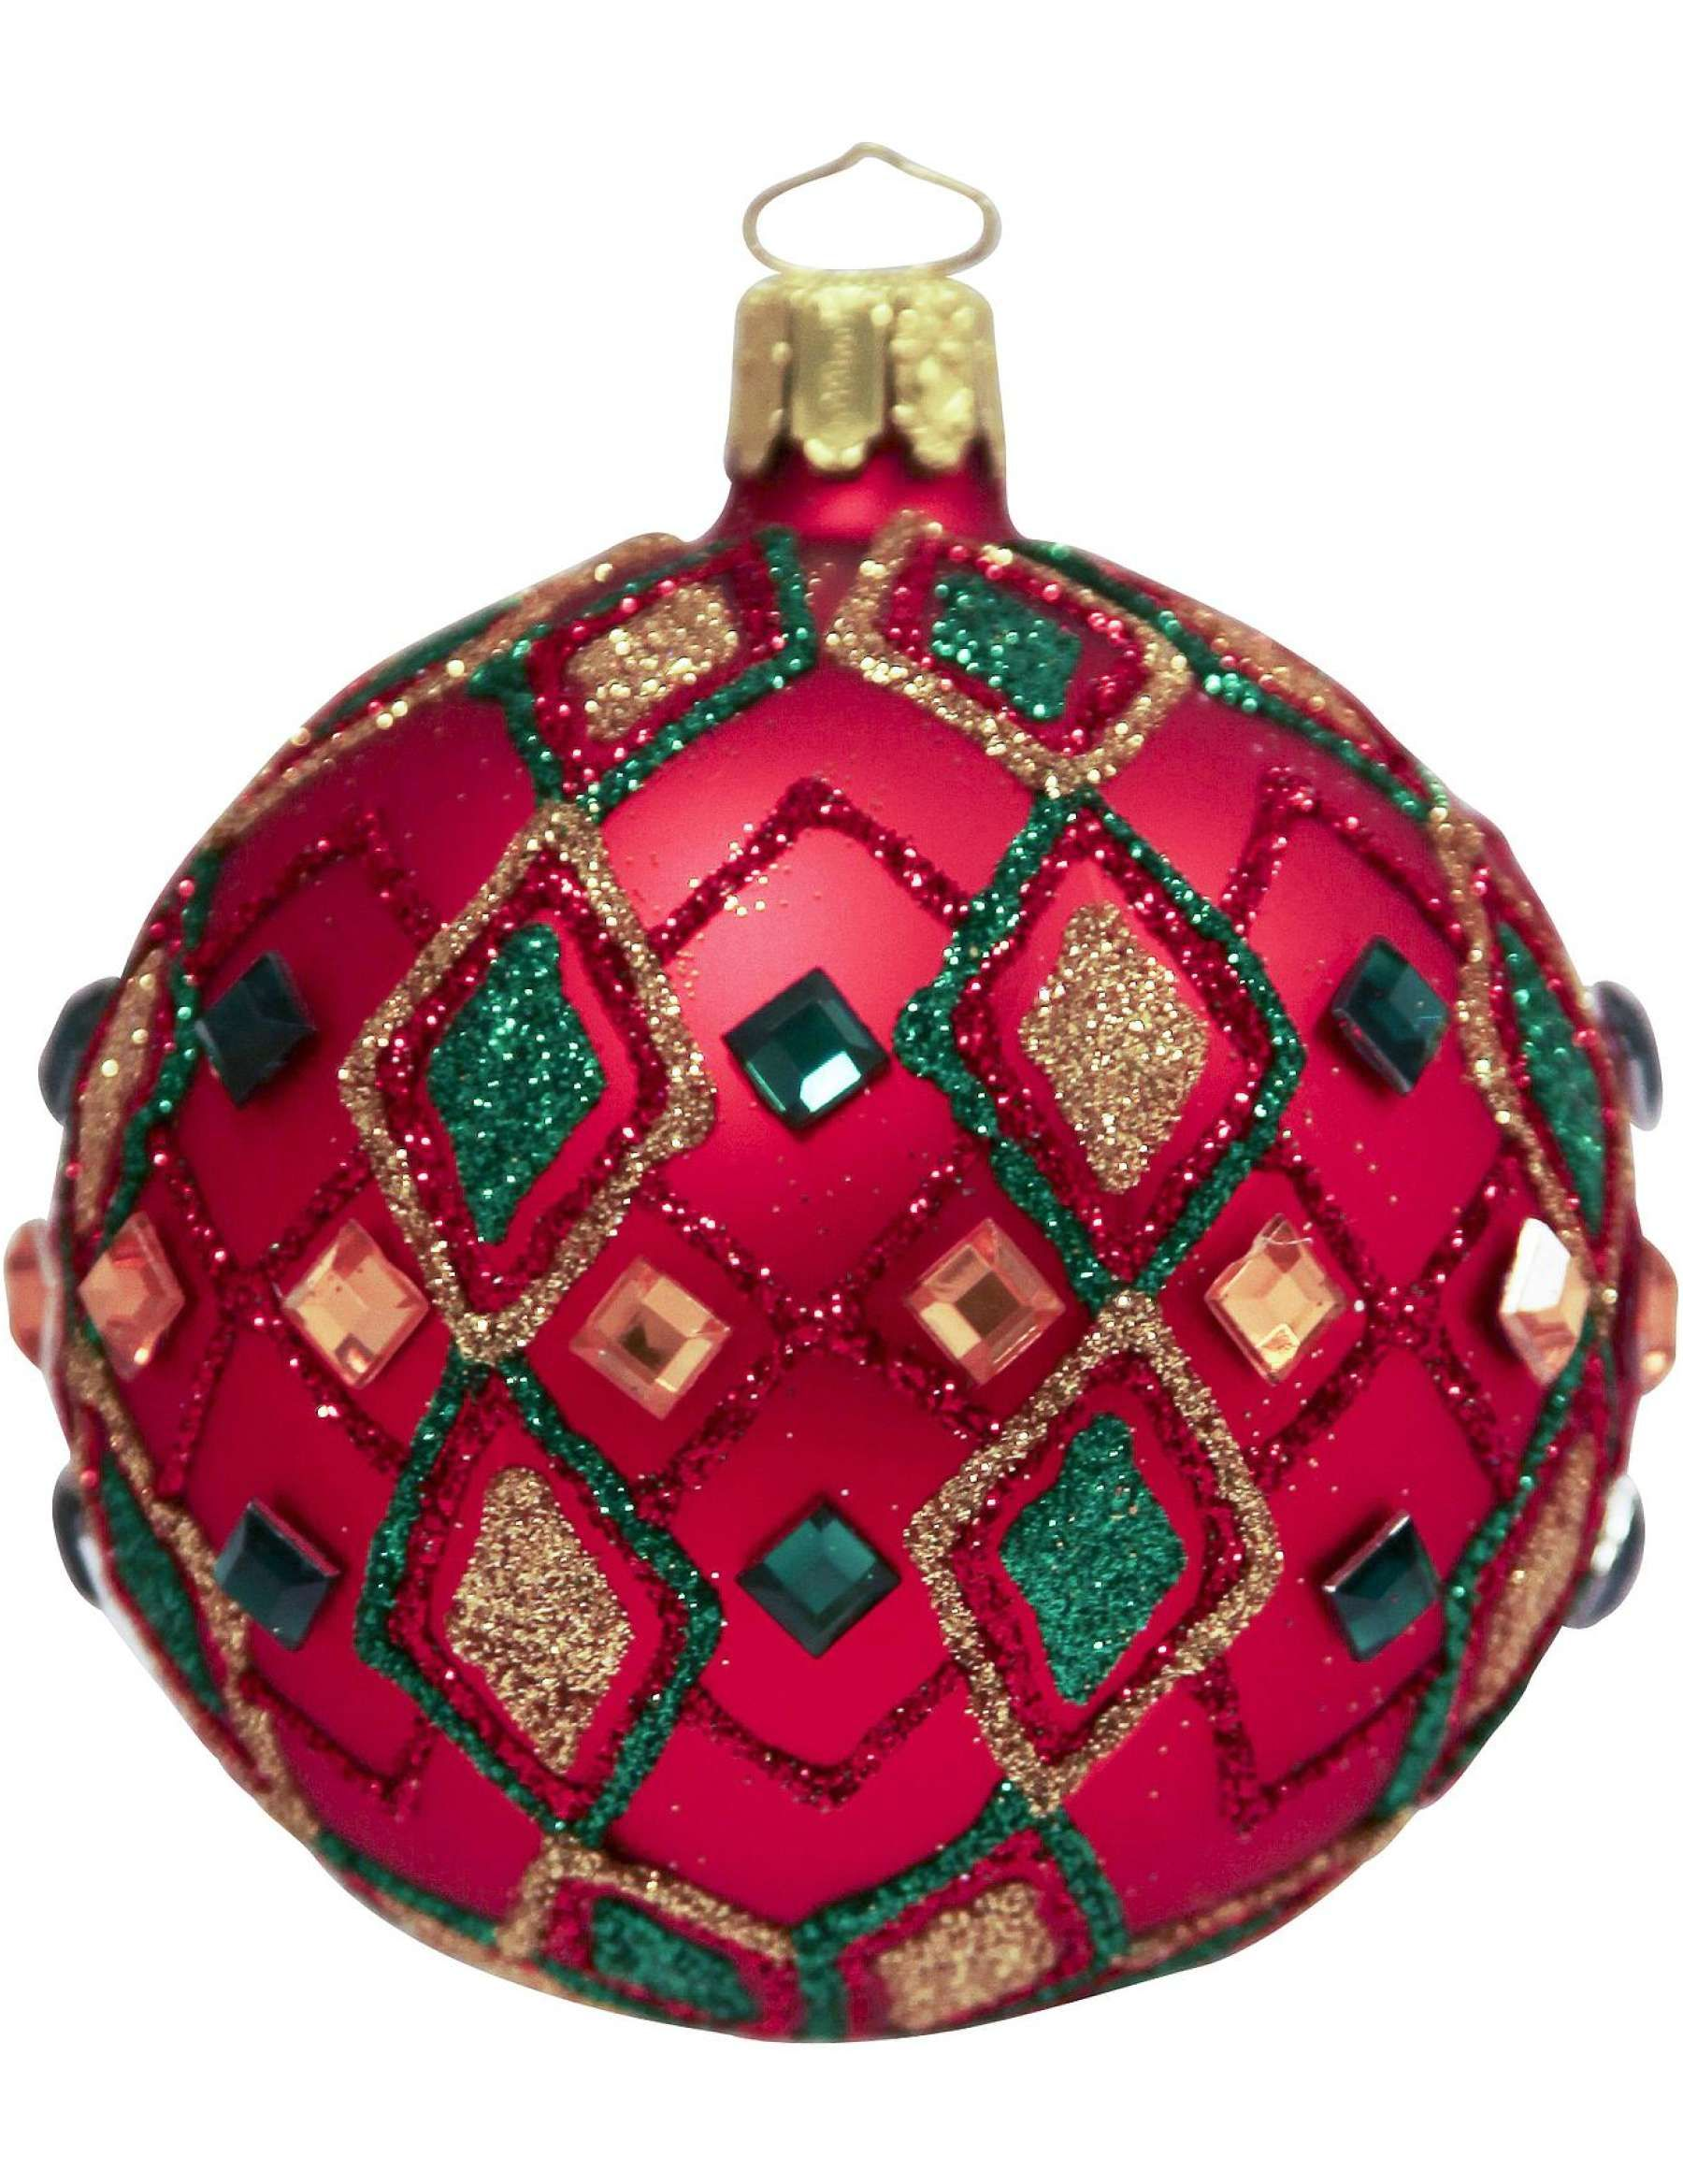 David jones christmas shop red jewelled bauble christmas david jones christmas shop red jewelled bauble negle Gallery